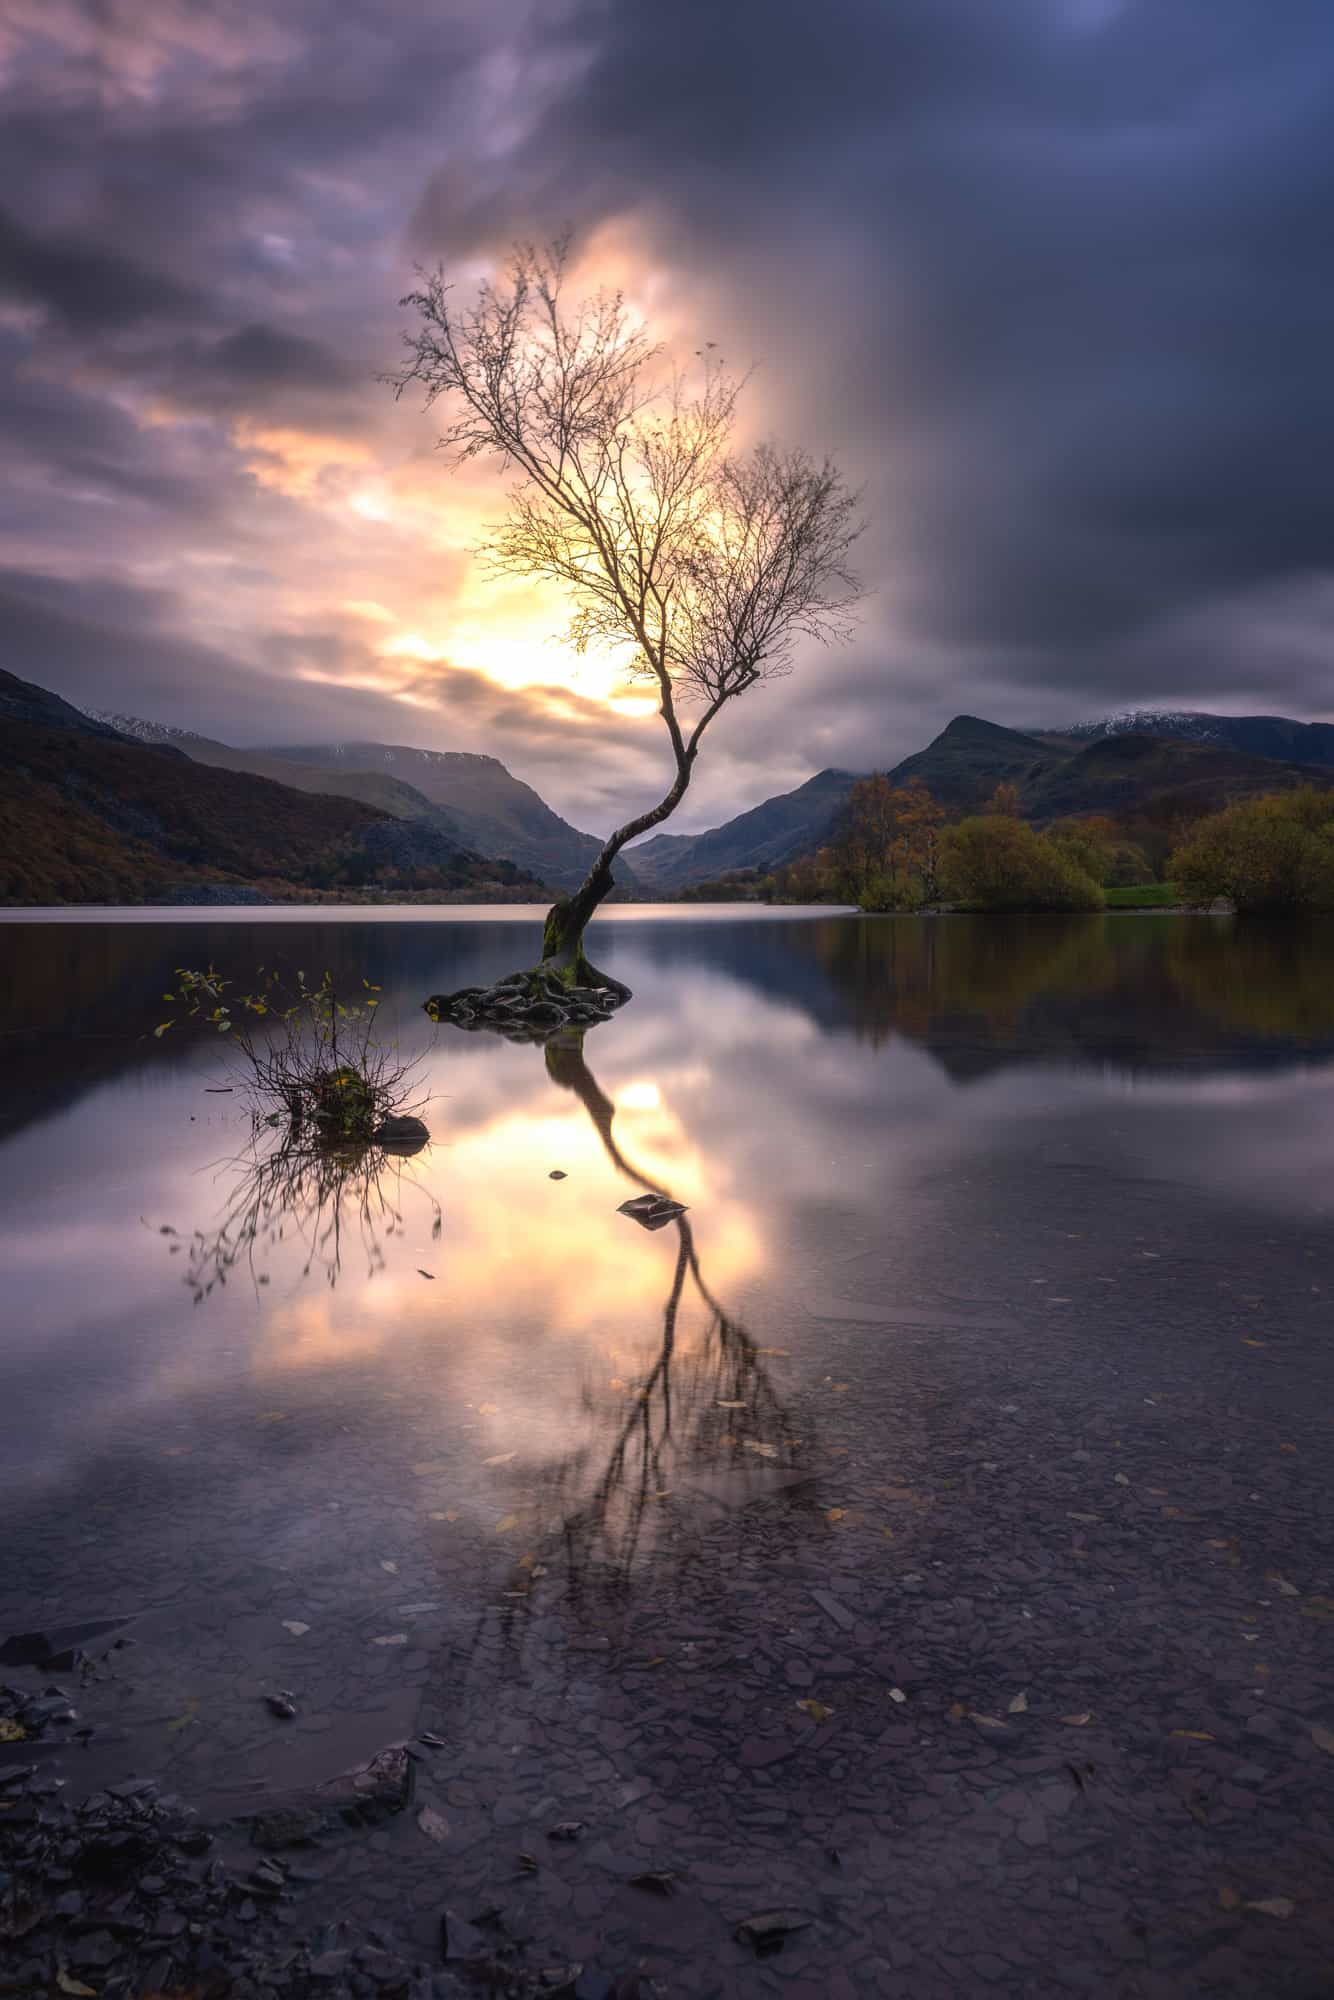 The first sunrise of 3 days in Snowdonia is at the Lonely Tree on Llyn Padarn.